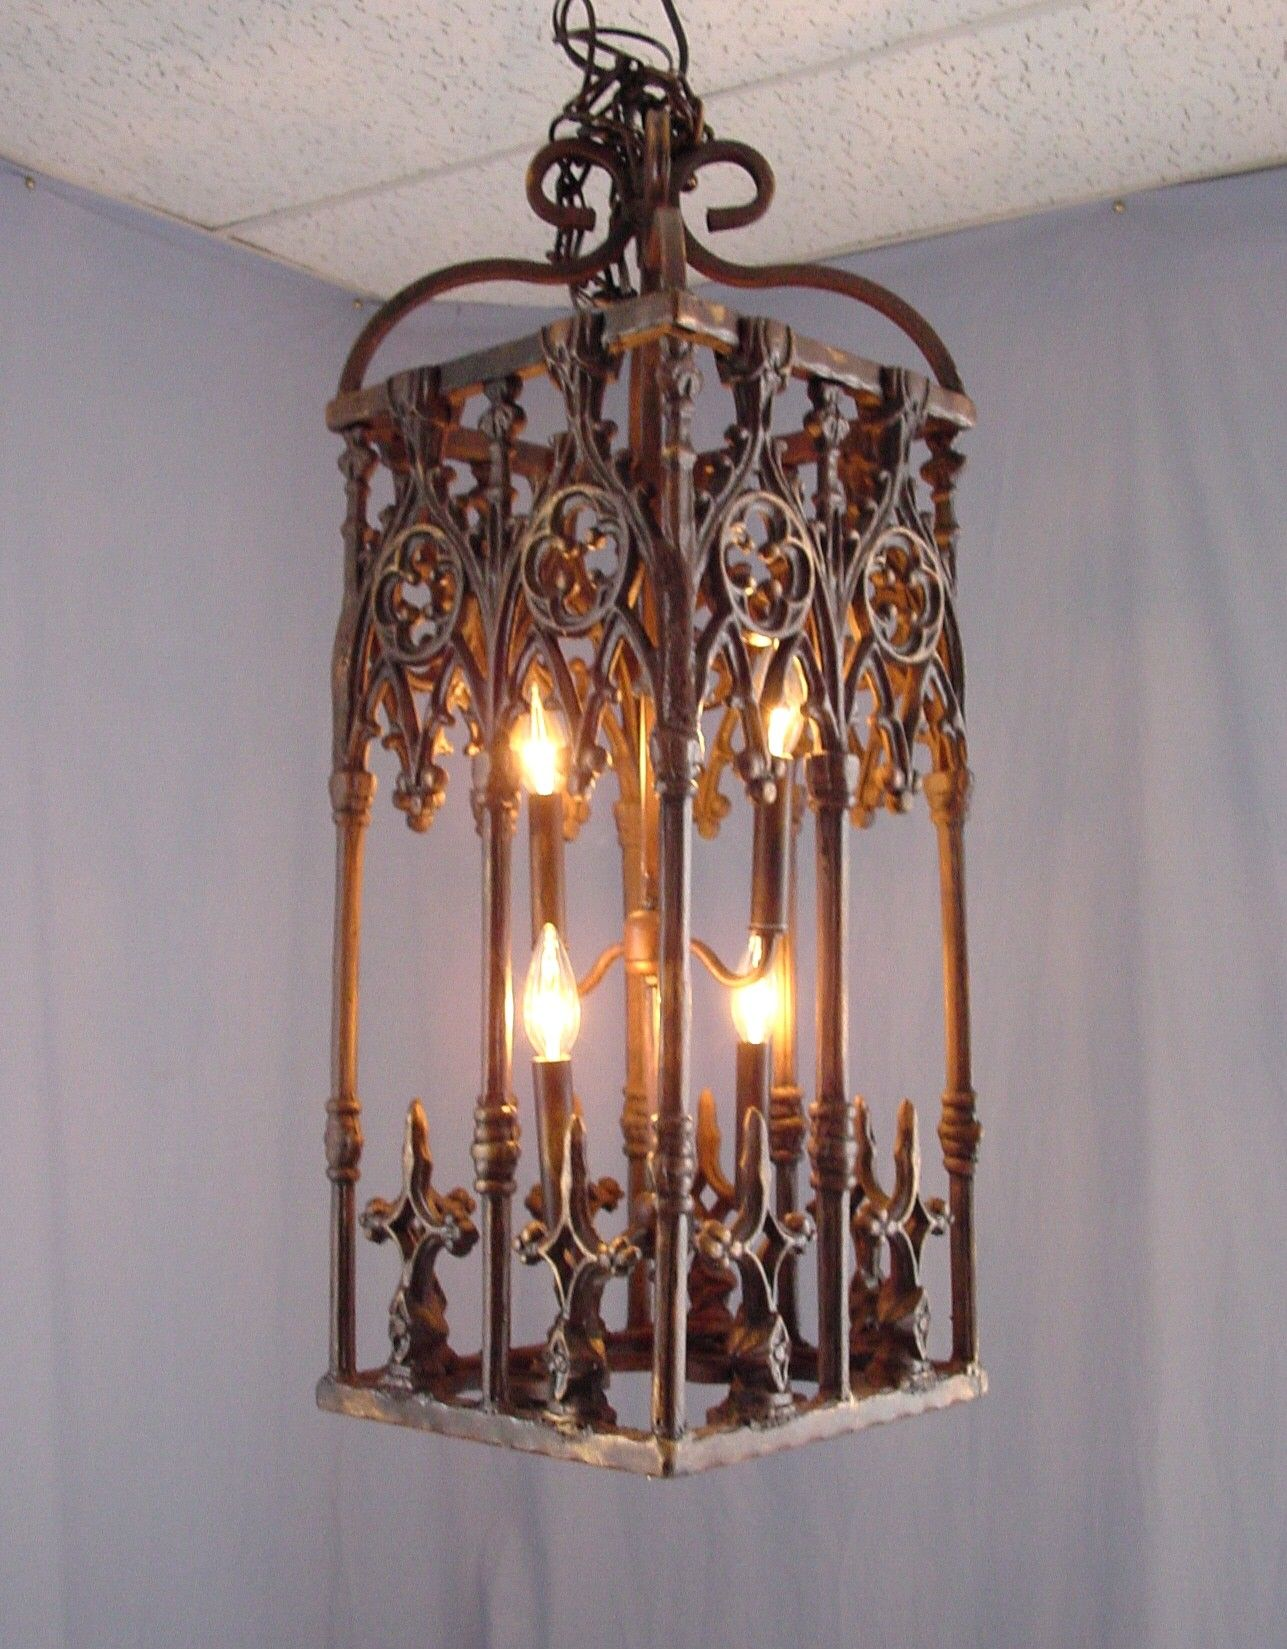 Rustic Chandelier From Wrought Iron – Rustic Wrought Iron Chandelier